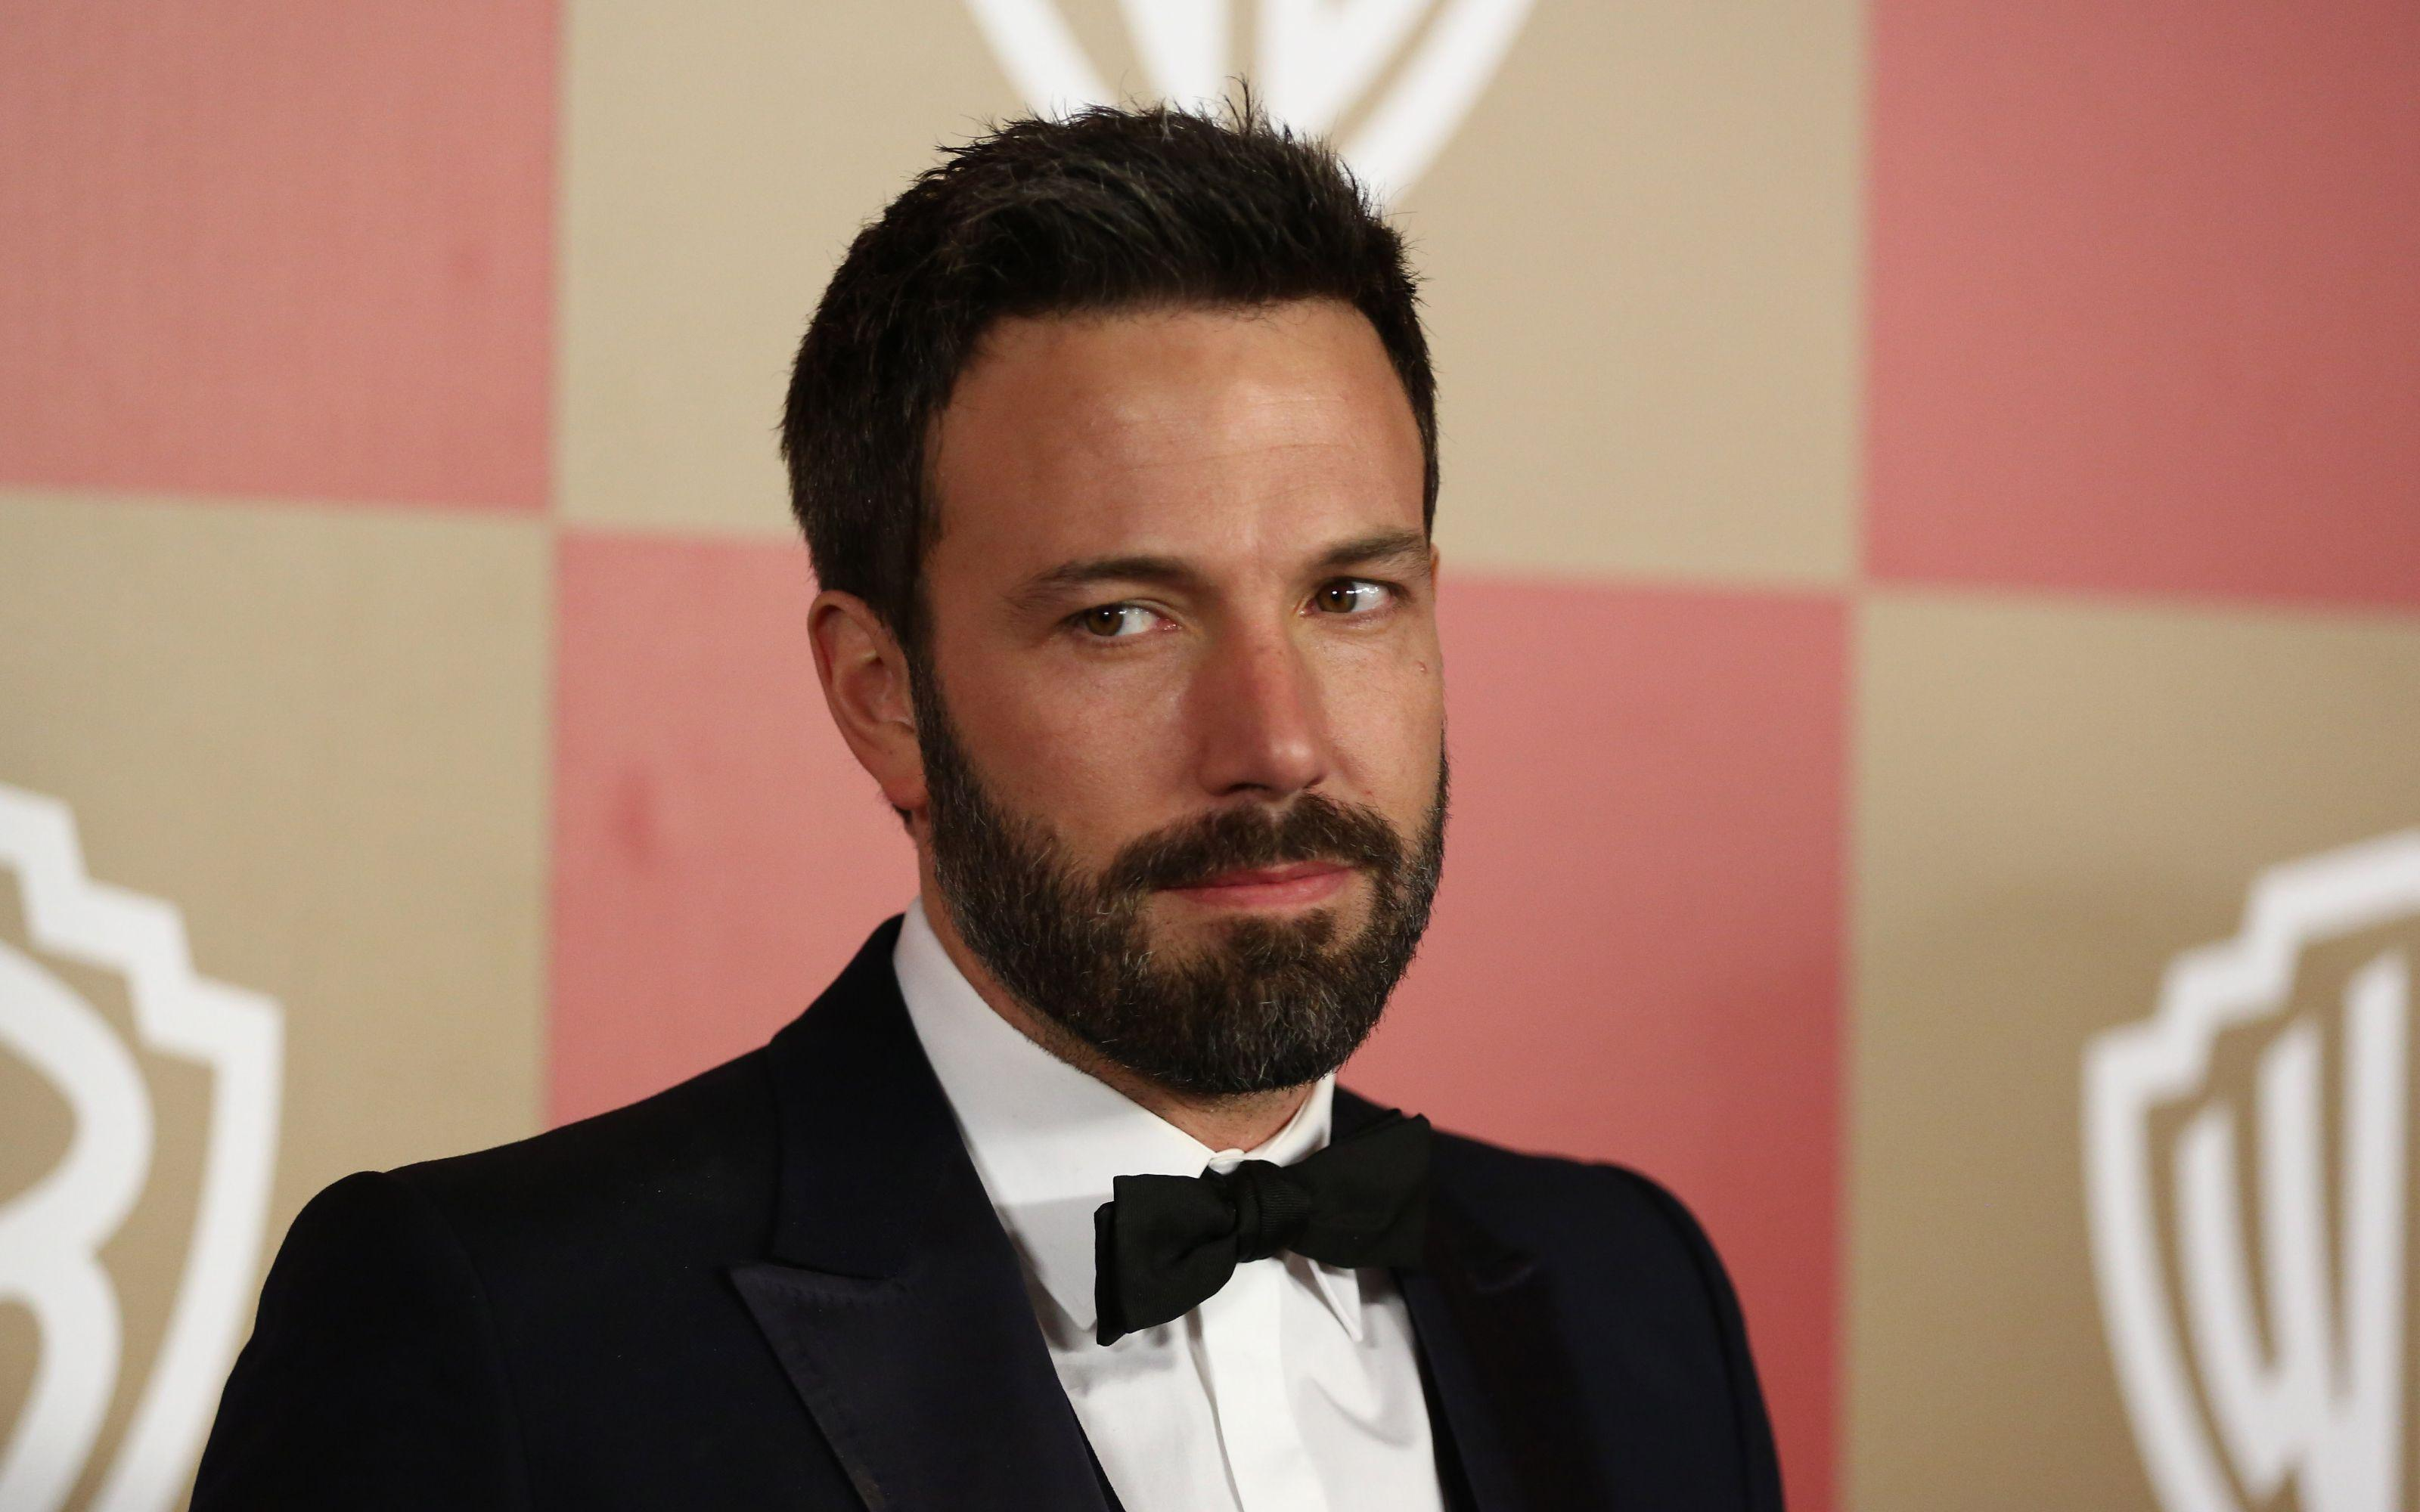 Ben Affleck Wallpapers, Pictures, Images